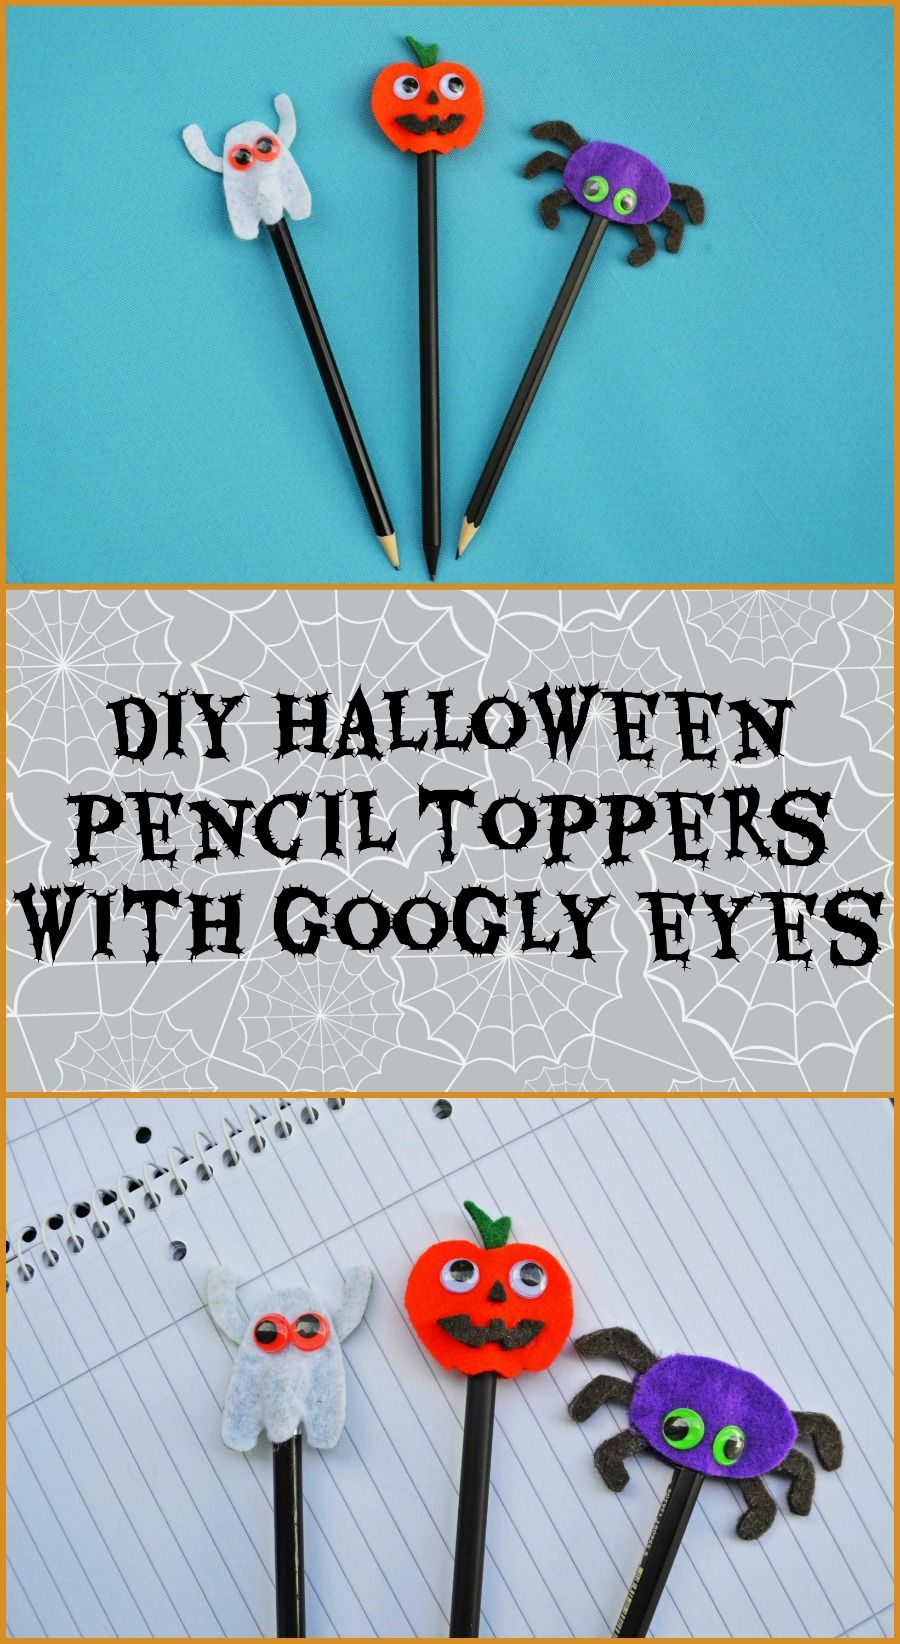 Diy Halloween Pencil Toppers With Googly Eyes Pencil Toppers Pencil Toppers Diy Pencil Topper Crafts